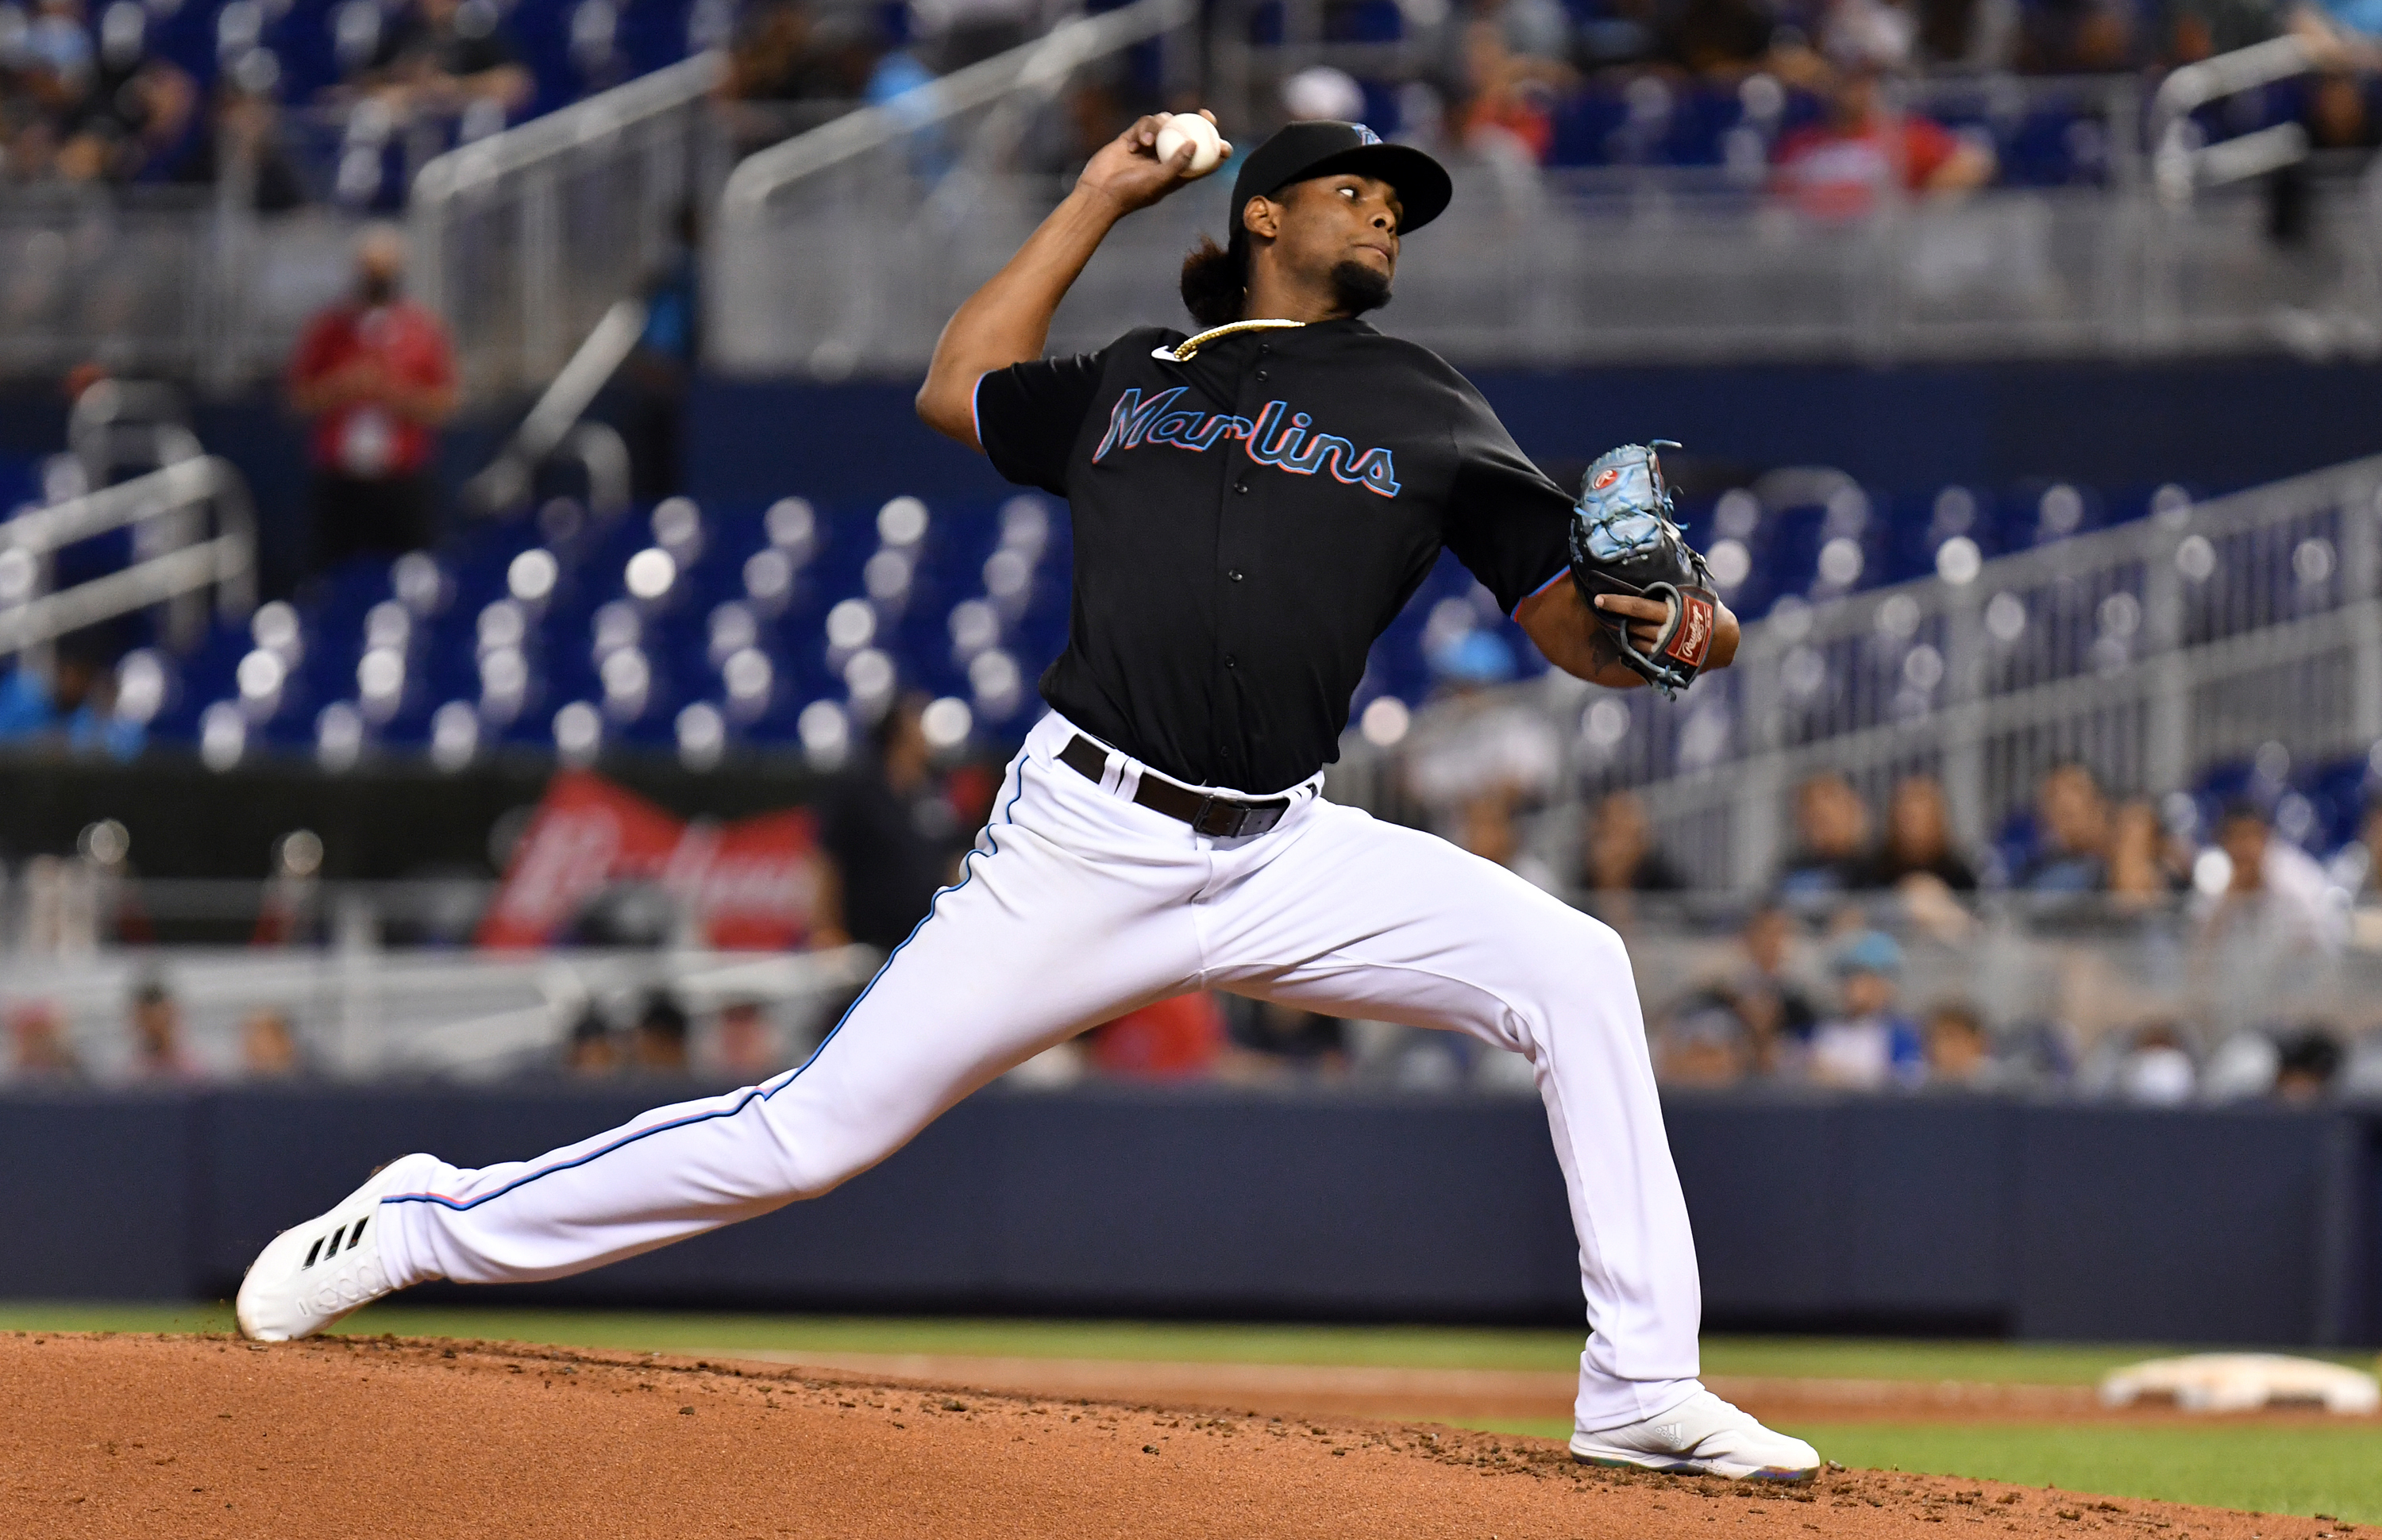 Miami Marlins pitcher Edward Cabrera (79) throws against the Pittsburgh Pirates during the second inning at loanDepot Park.